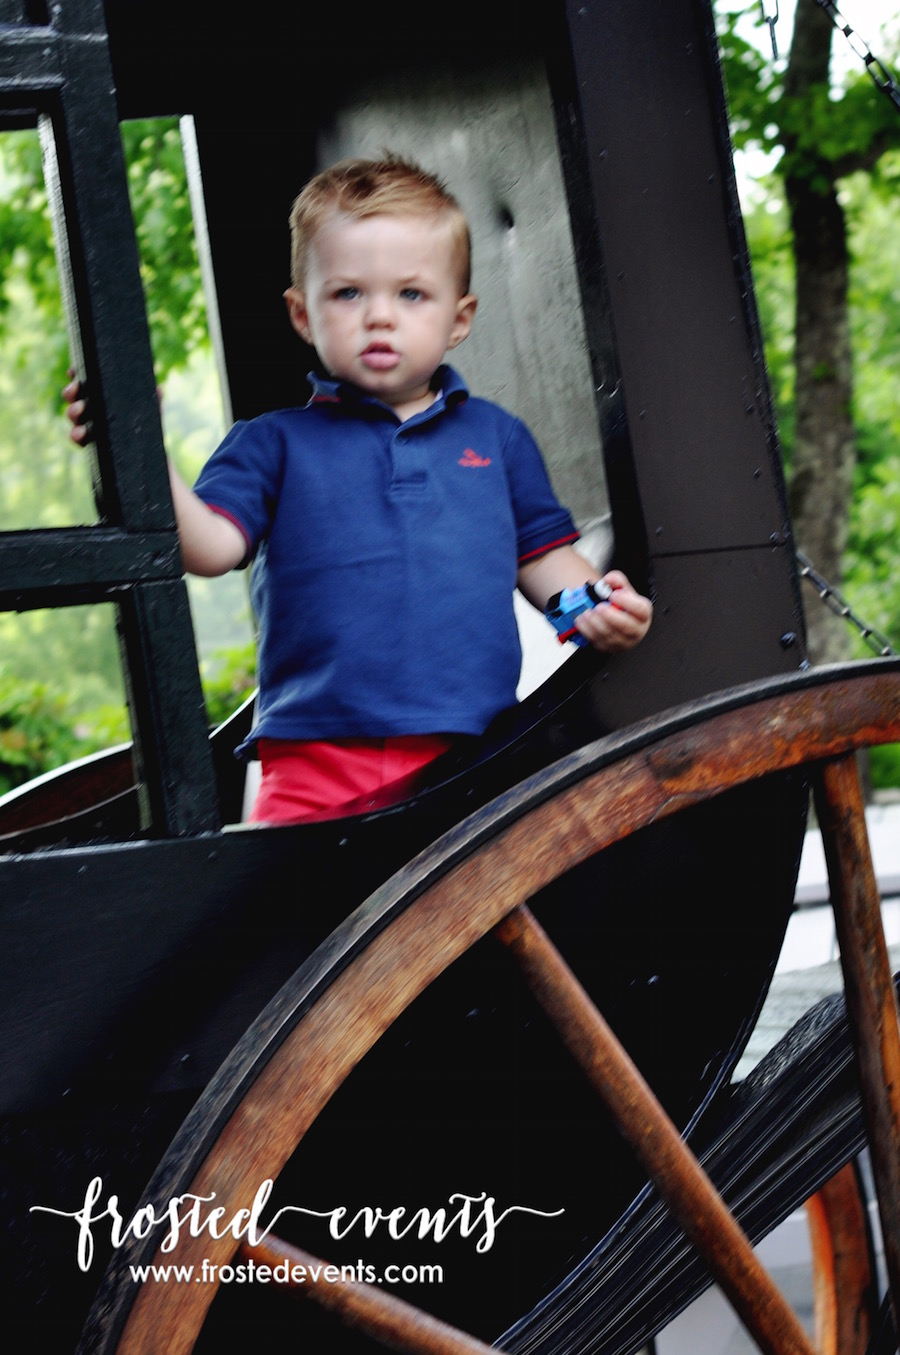 day-out-with-thomas-the-train-review-photos-frostedeventscom-mommy-blogger-pics-15